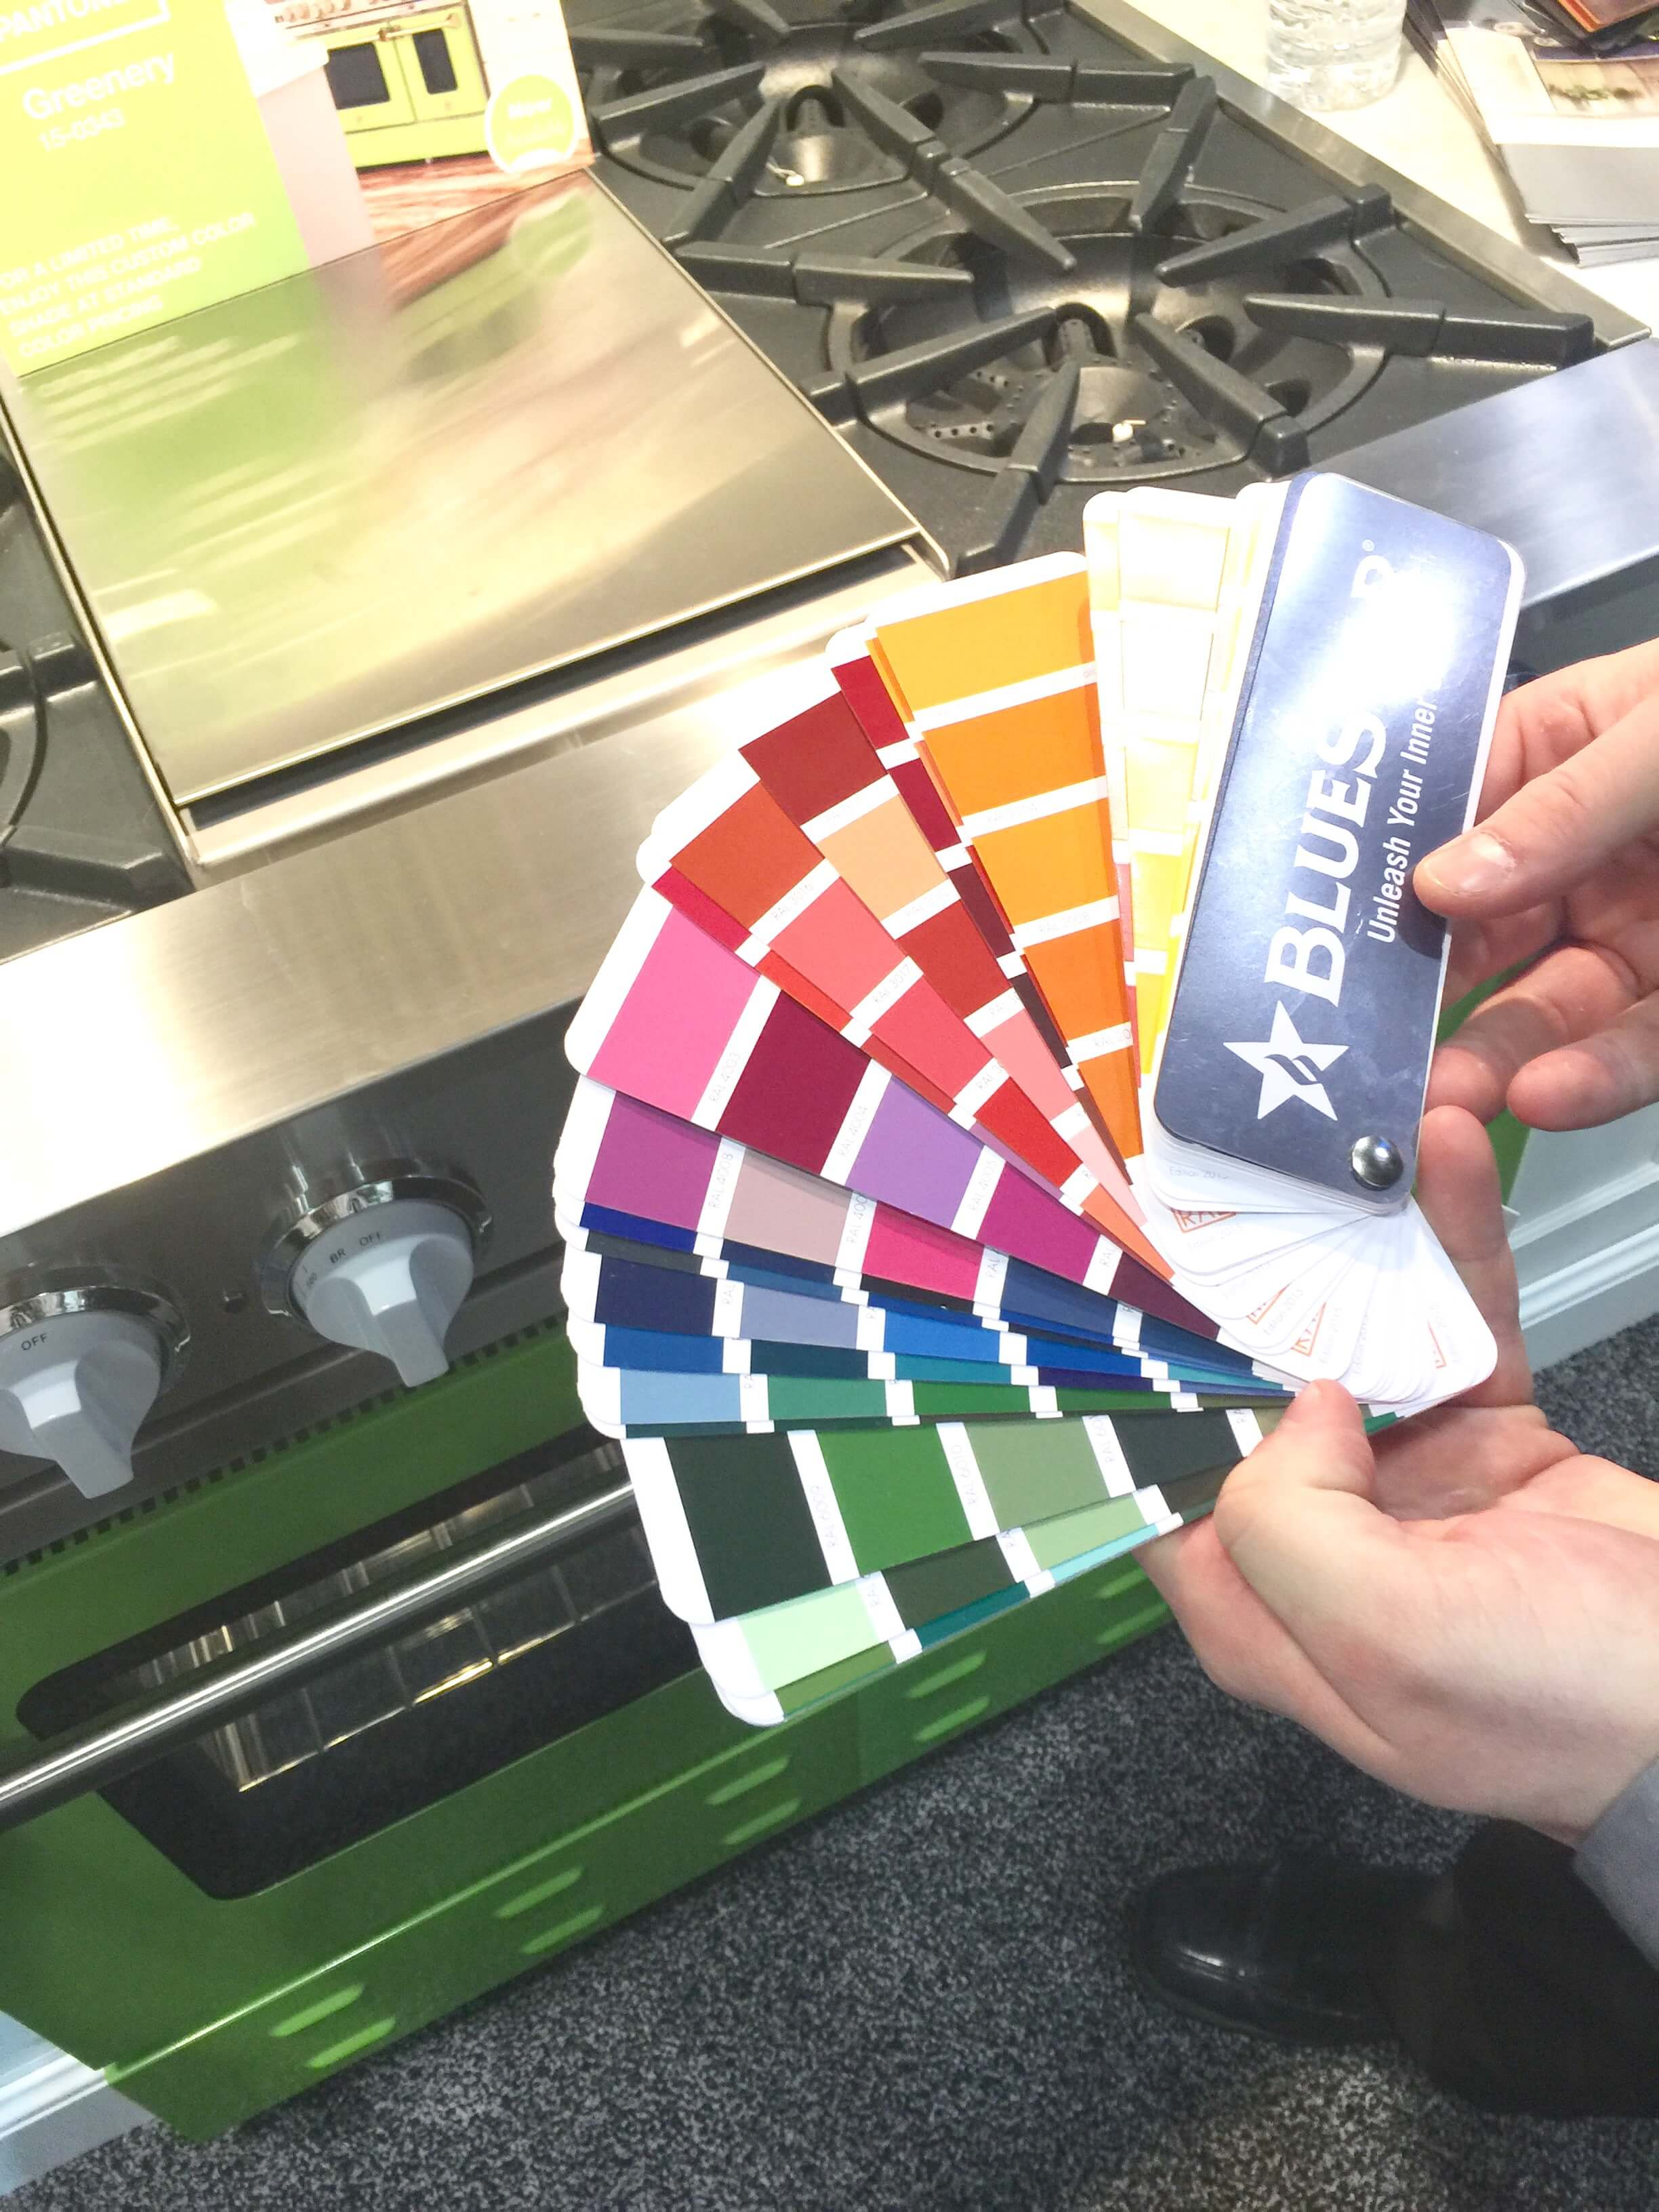 Many colors to choose from for your Blue Star appliances.